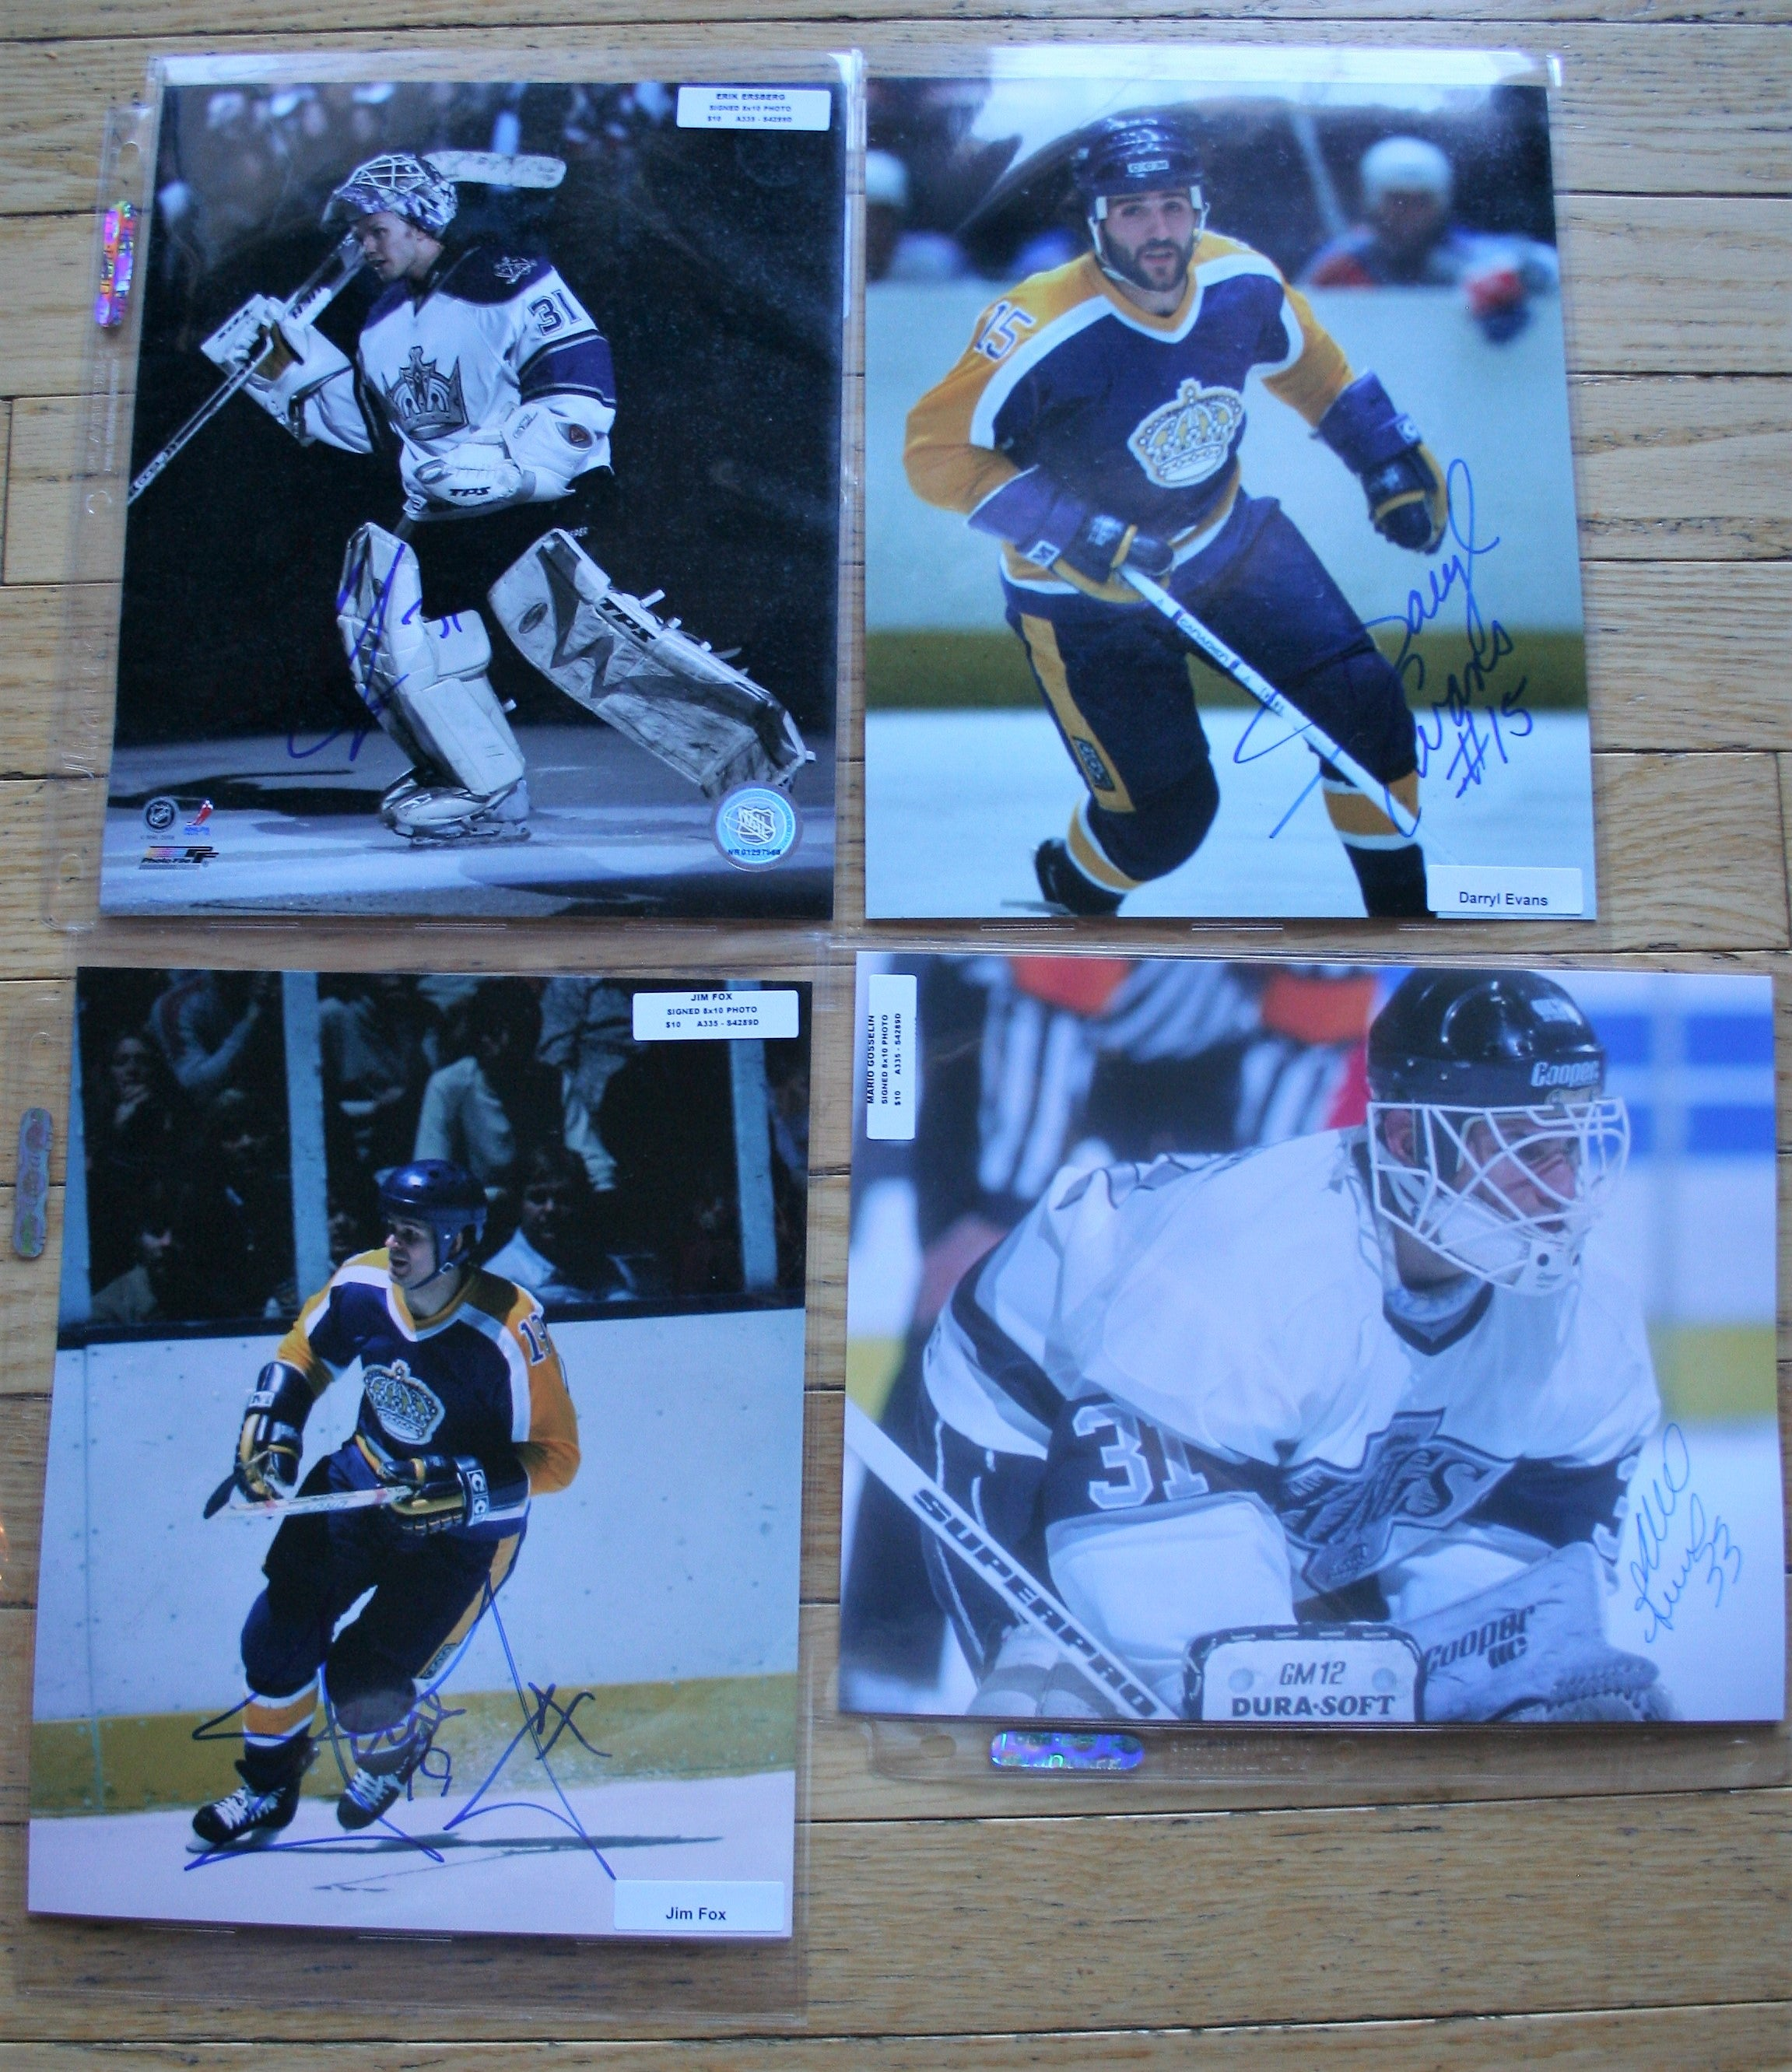 4 Signed LA Kings NHL 8x10 Photos  Ersberg, Evans, Fox, Gosselin   FREE SHIPPING  c/w COA  NHL Hockey Memorabilia